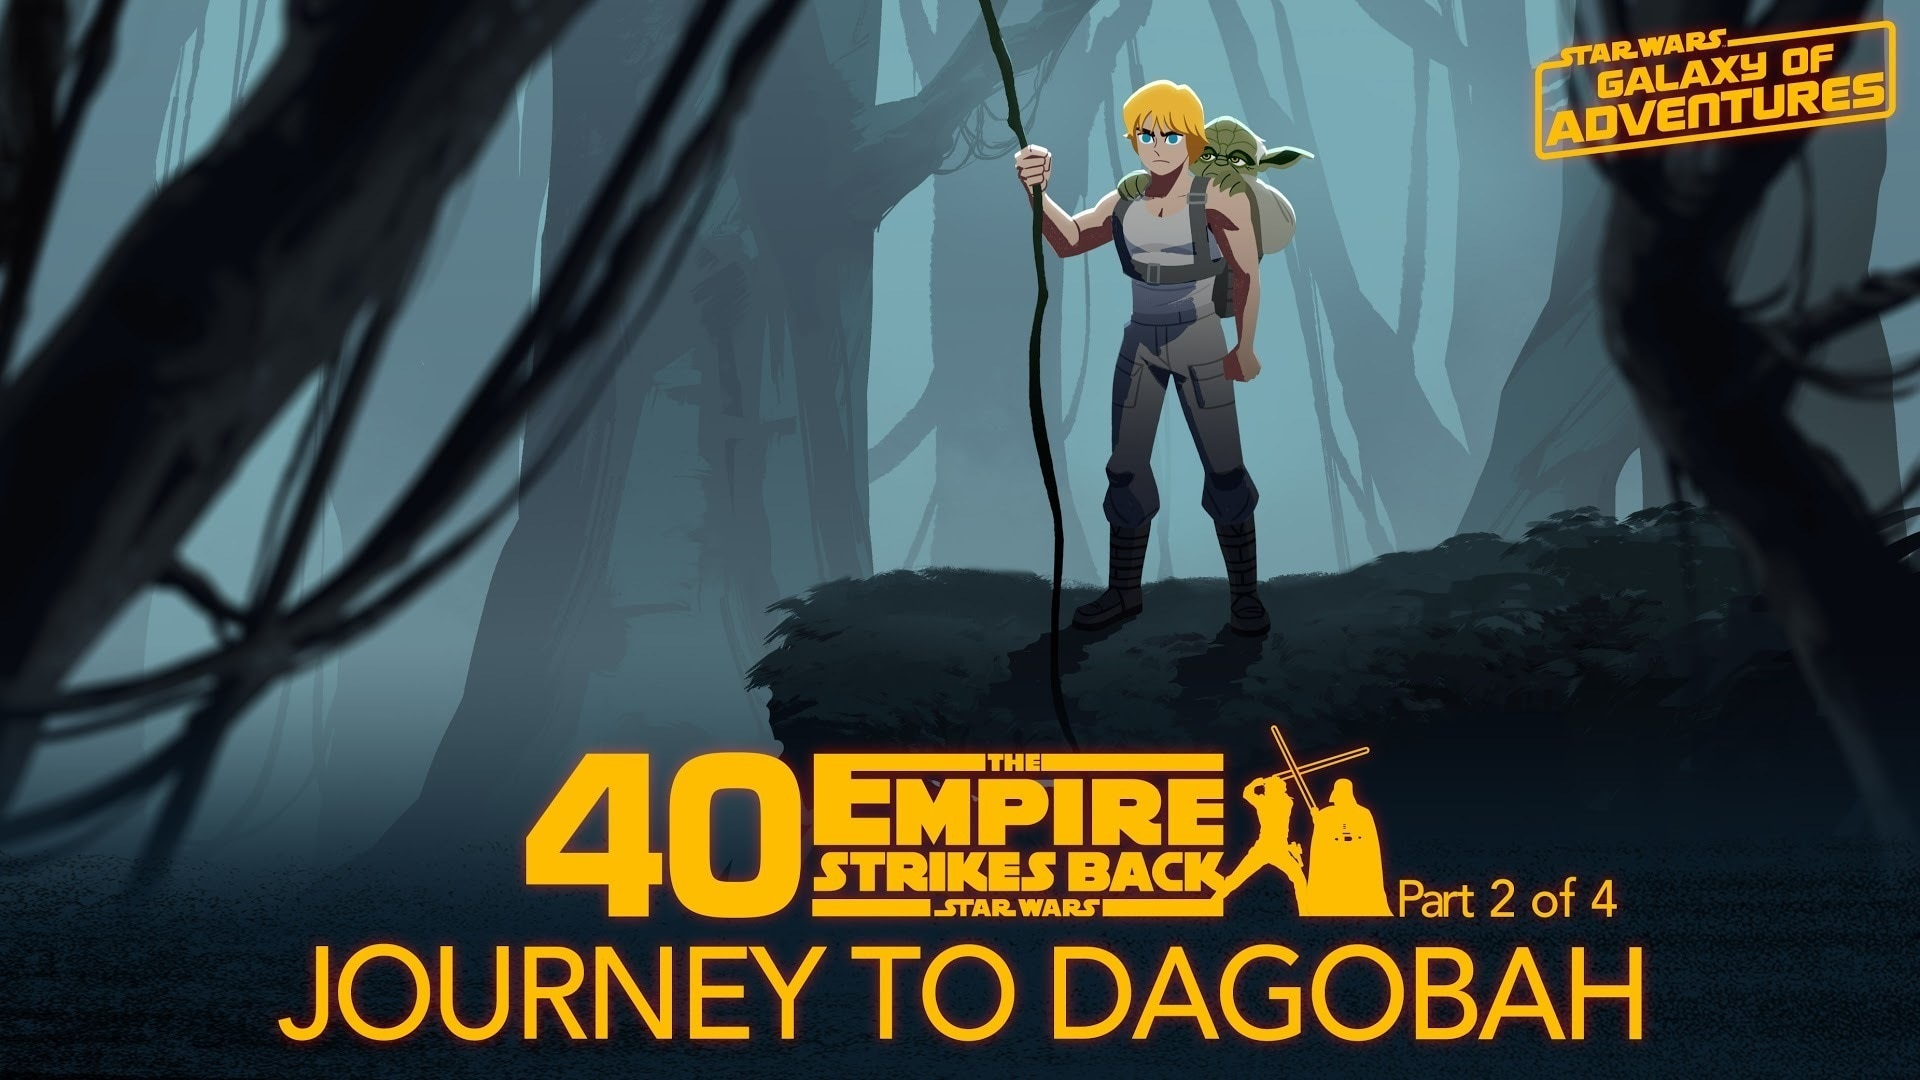 Journey to Dagobah | Star Wars Galaxy of Adventures